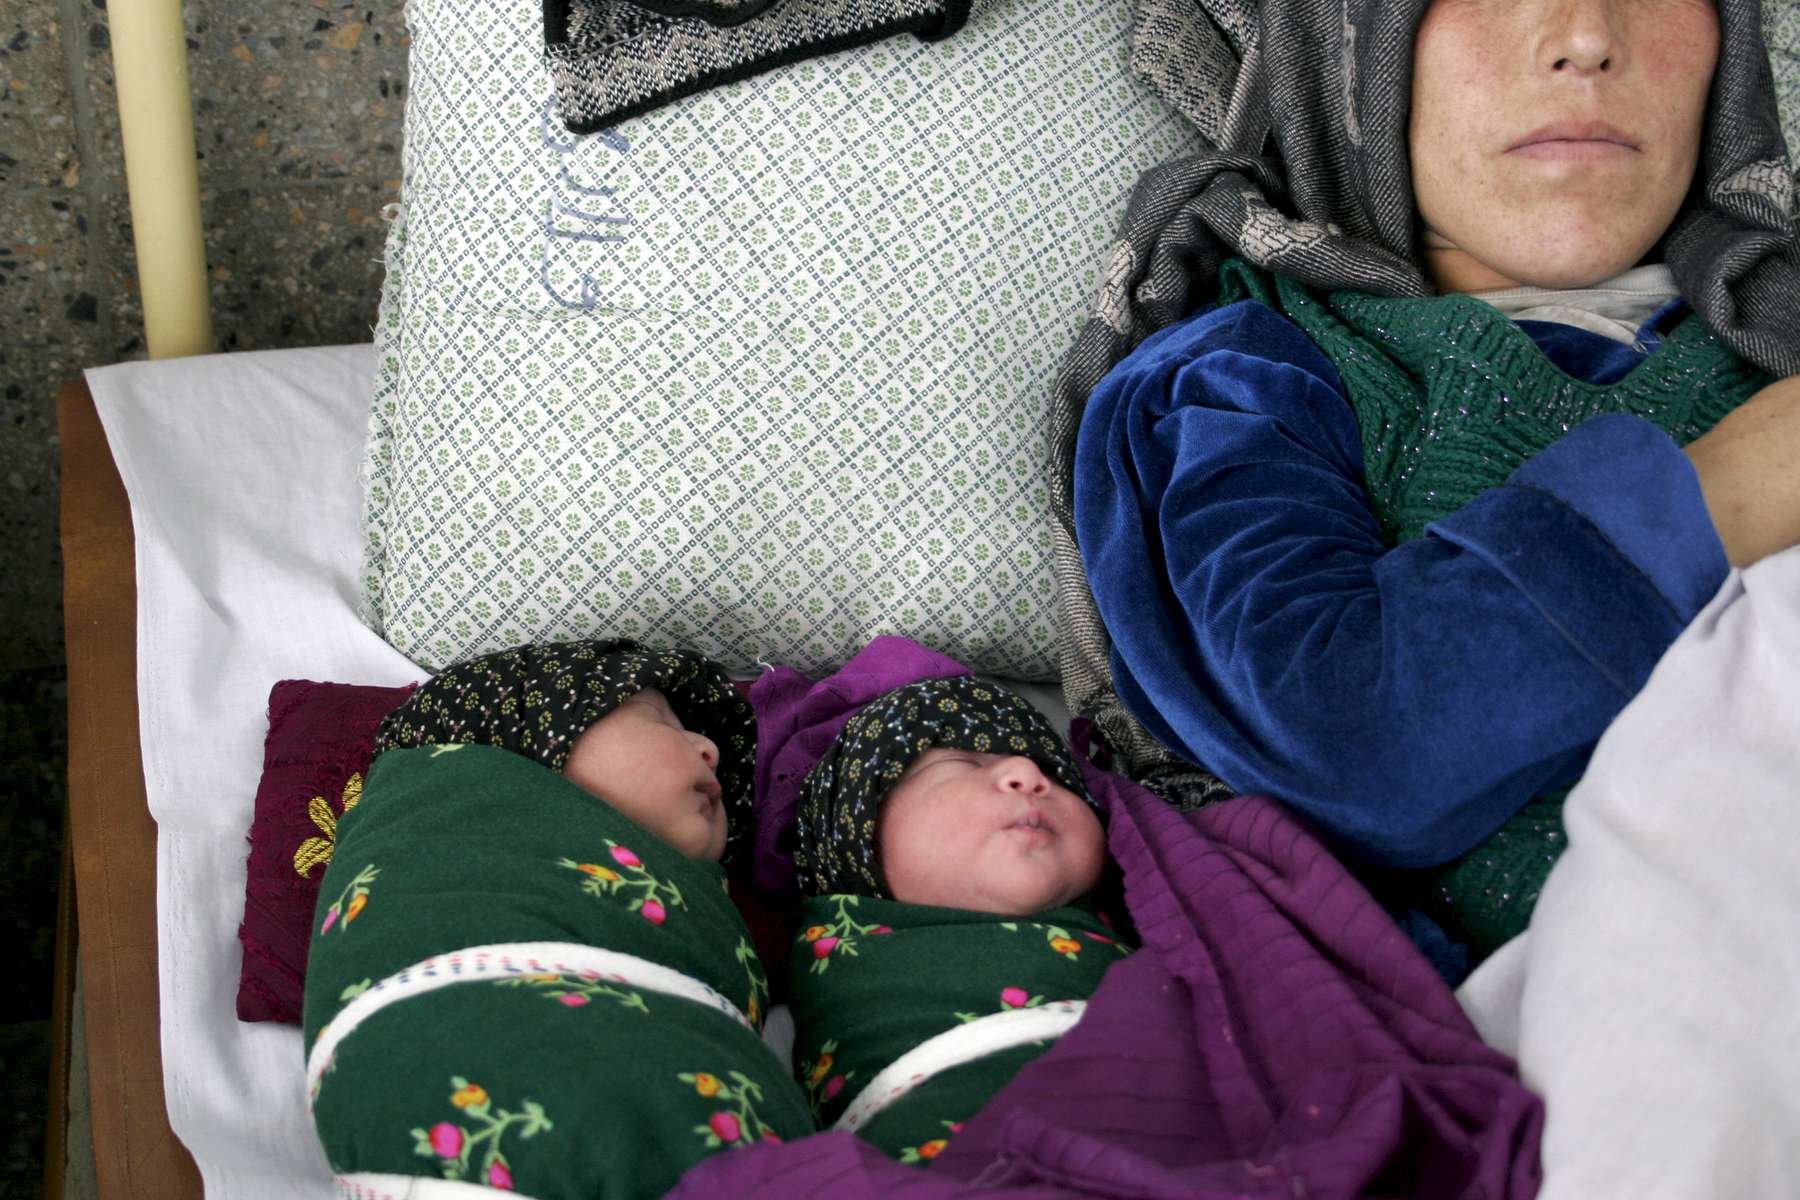 A mother rests next to her twins, born a few hours earlier. More than 12,000 babies a year are delivered at Rabia Balkhi. The fertility rate for Afghan women is 6.6, two and a half times higher than the world average.